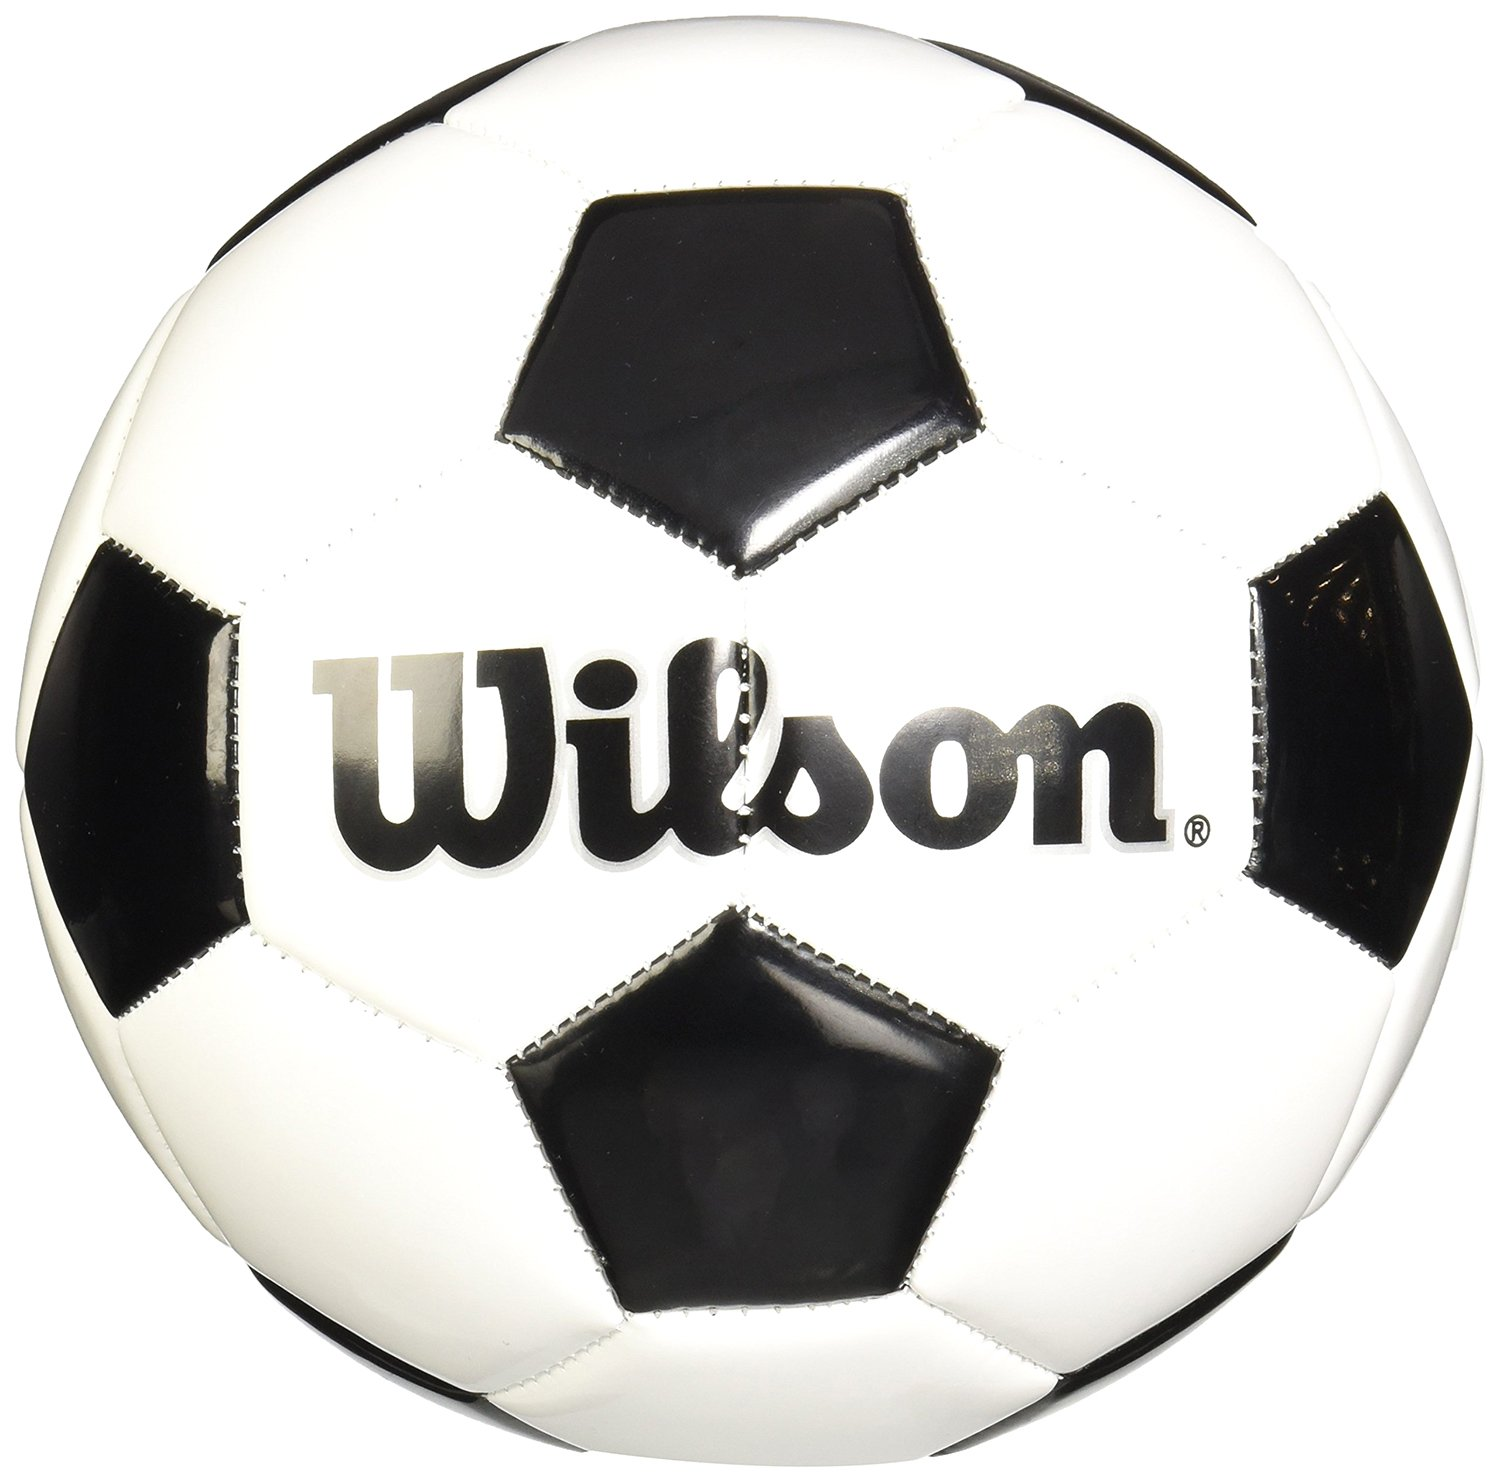 bdf6032b3c9 Best Rated in Soccer Balls & Helpful Customer Reviews - Amazon.com